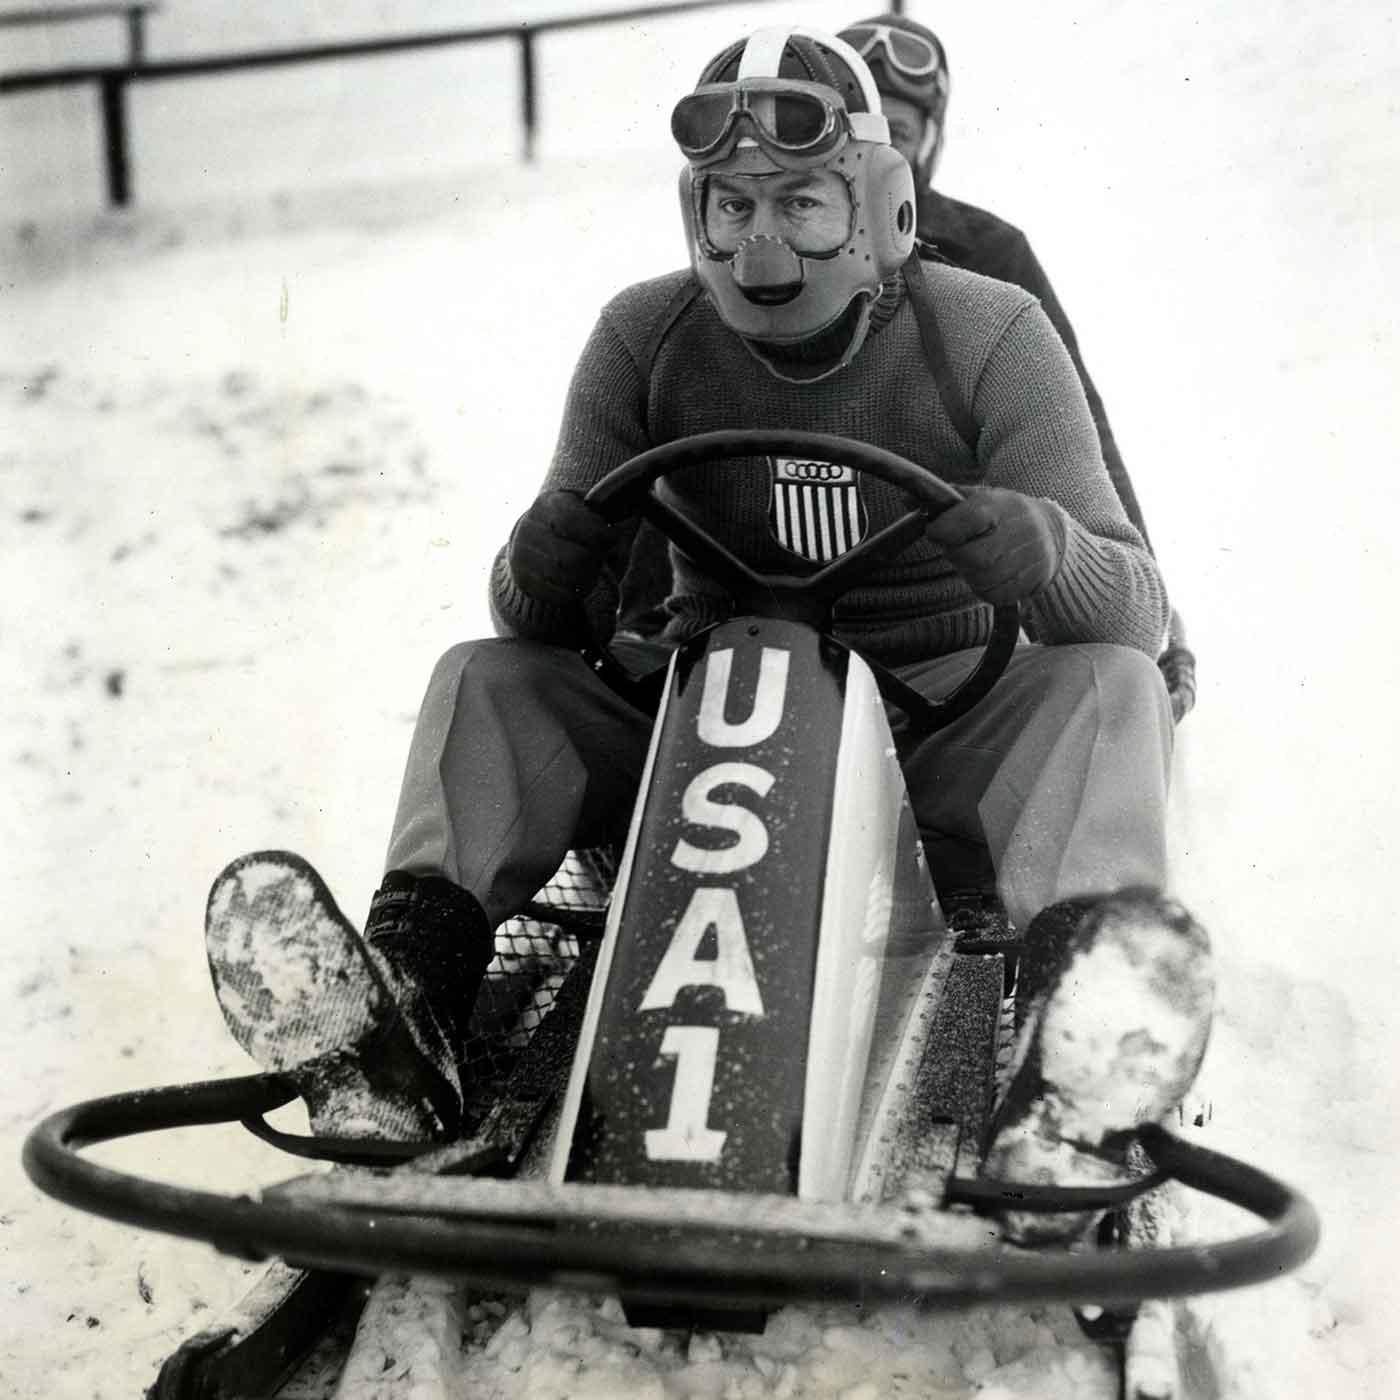 1932 Olympic Winter Games - Bobsleigh - 2 Man